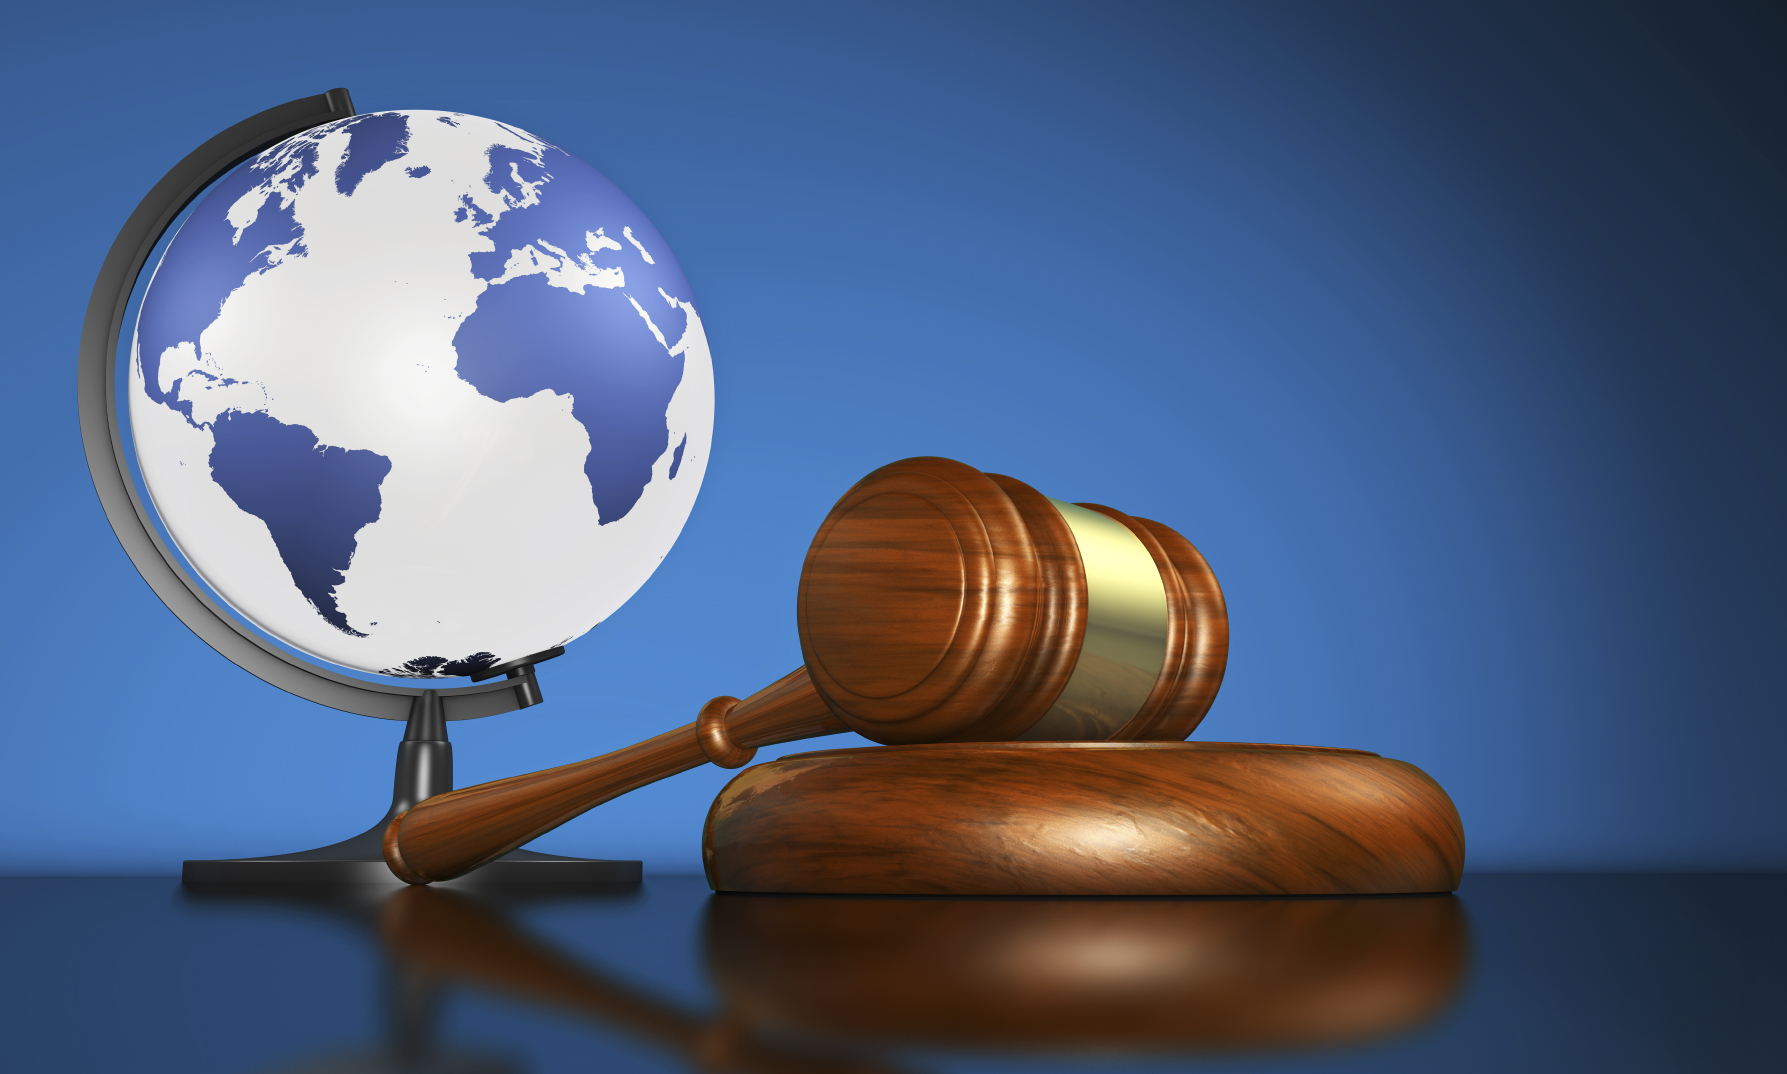 International law systems, justice, human rights and global business education concept with world map on a school globe and a gavel on a desk on blue background.